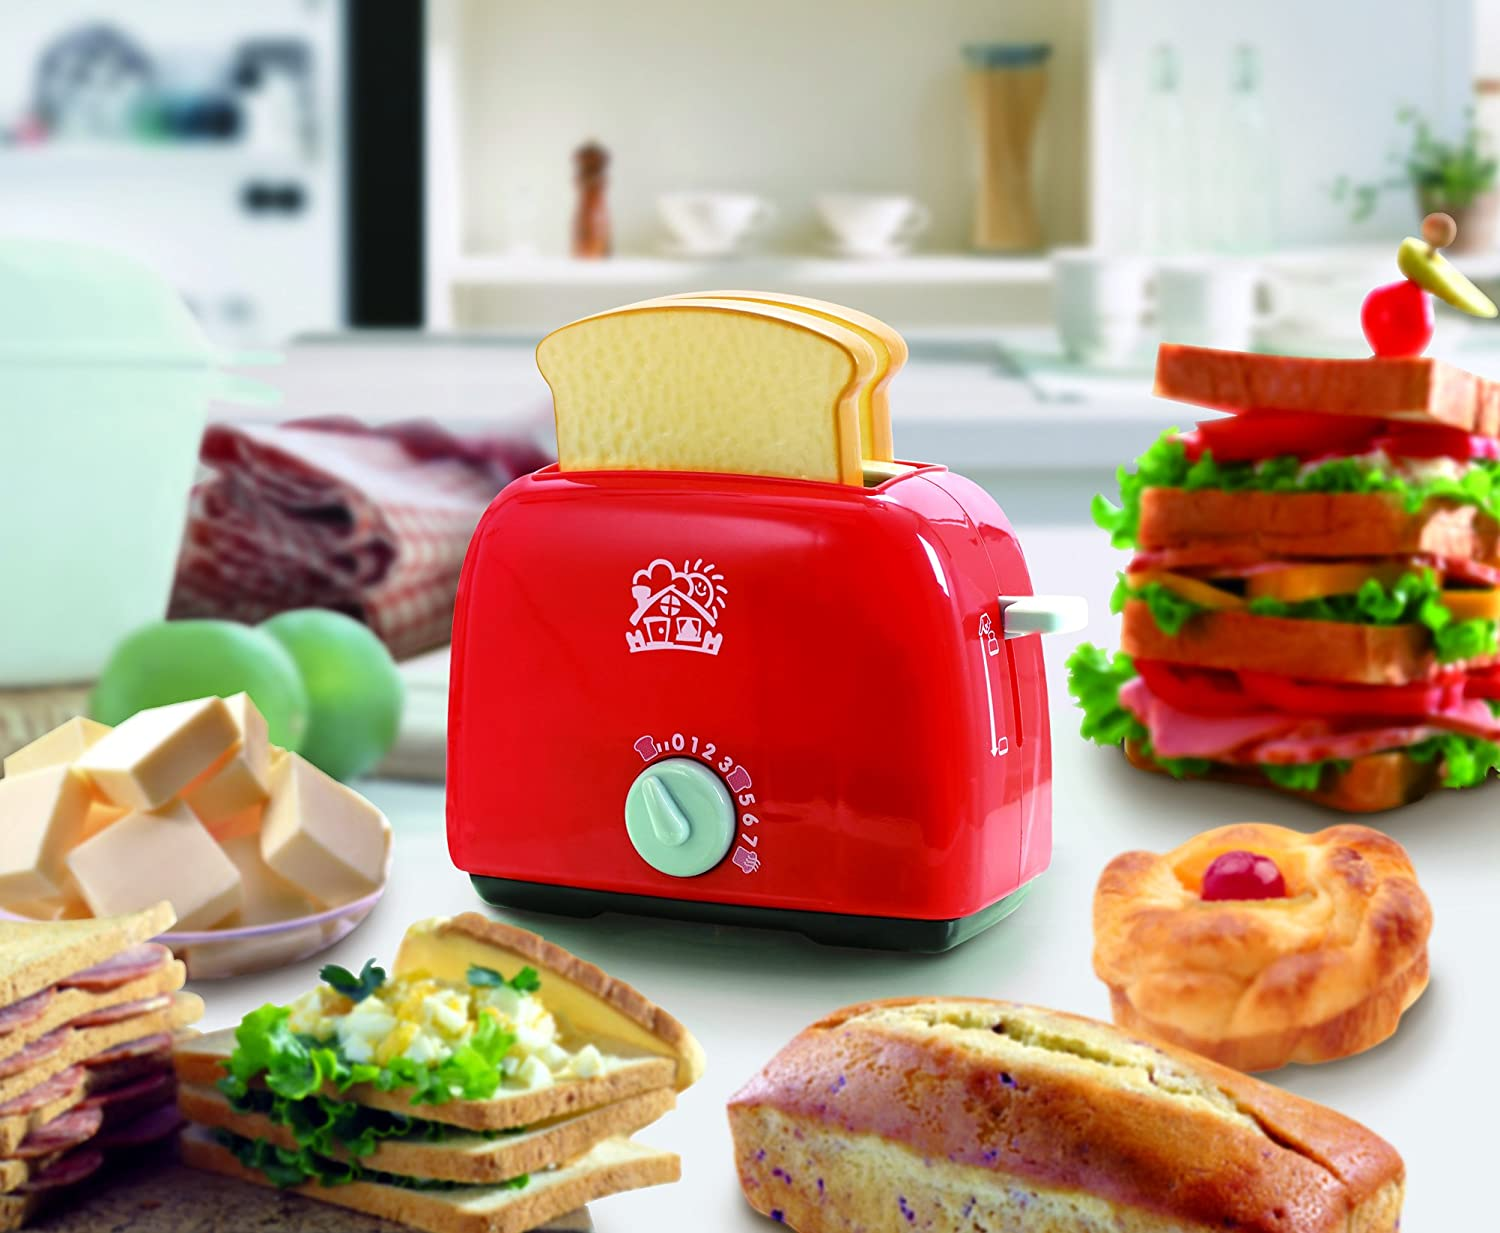 PlayGo Lightweight Play Kitchen Bread Slices Toaster Toy Pretend Play Pop-Up for Kids Age 3 Years /& Up Midos Toys Distributor 3152